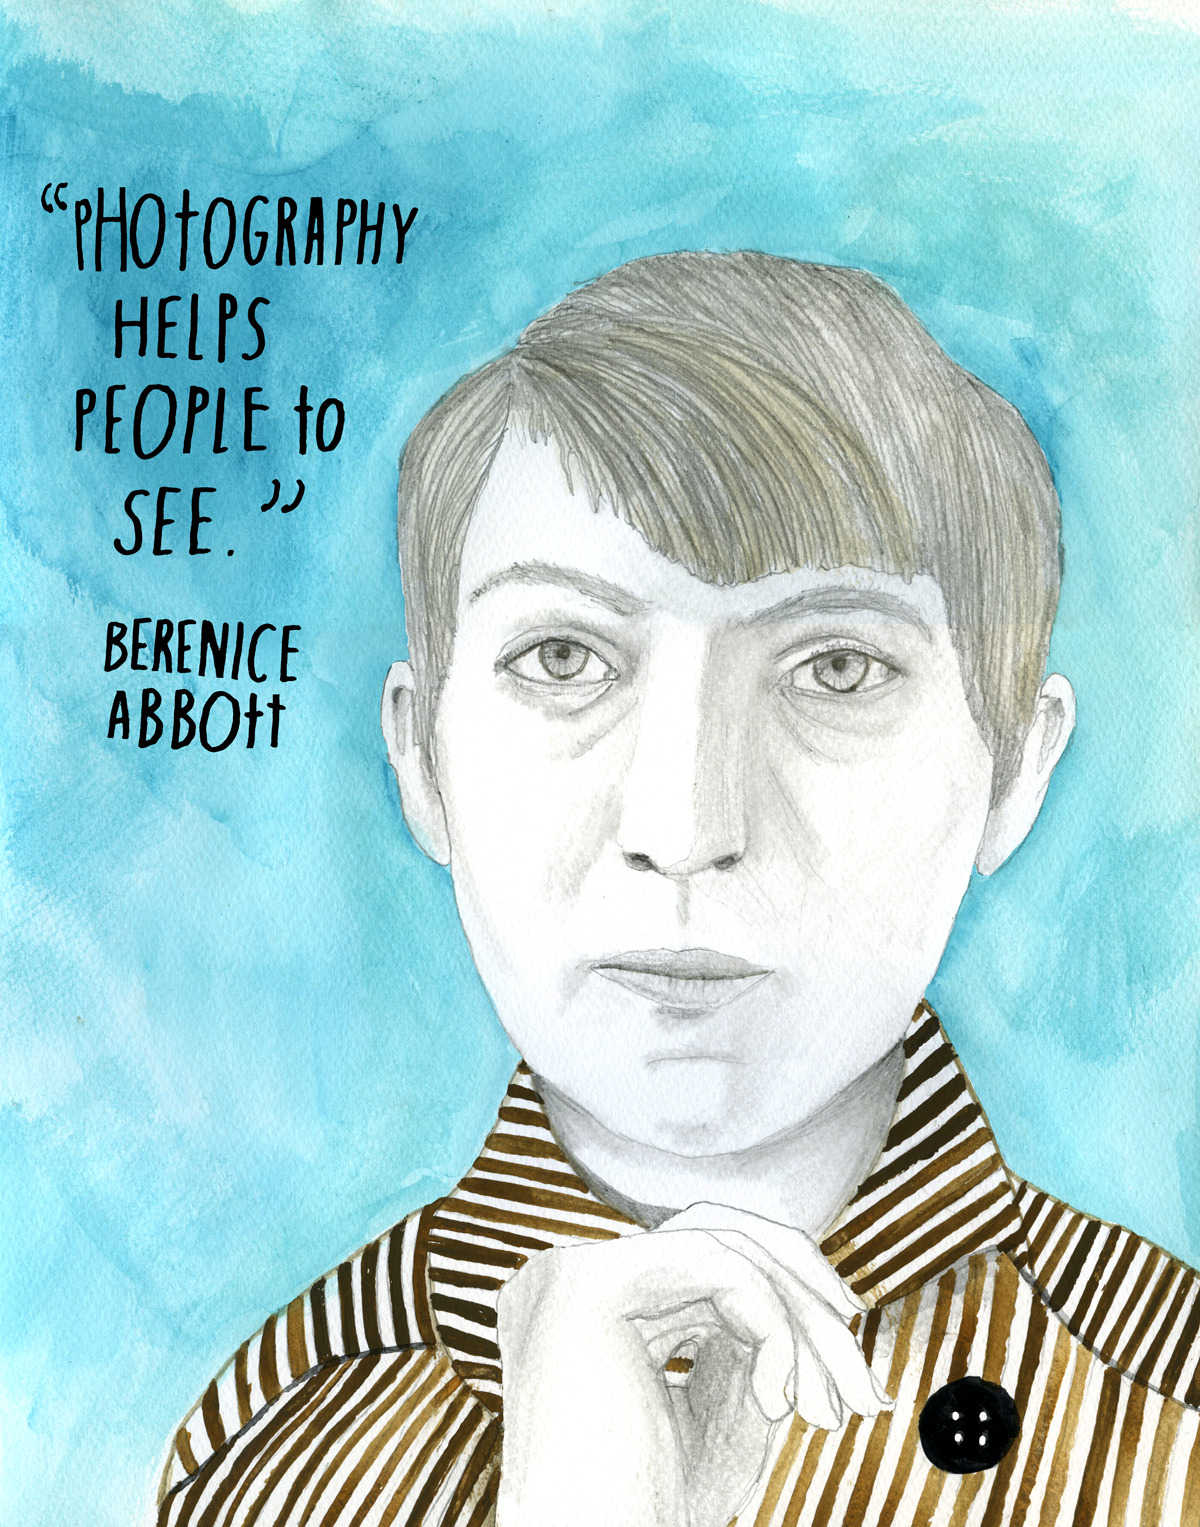 "Long before photography became ""the people's art,"" Berenice Abbott (July 17, 1898 – December 9, 1991) took a large-format camera to the streets to forge a new dialogue between the urban landscape and its inhabitants through her stark black-and-white photographs. Best-remembered for her Changing New York series — 307 evocative black-and-white portraits of the city's architecture and urban design, taken between 1935 and 1939 — Abbott remains one of the most recognizable voices in the history of photography. Her story is, in many ways, one of unlikely success. Raised by a divorced mother, Abbott left her Ohio home in 1918, at the age of twenty, and moved to New York's Greenwich Village to study sculpture. There, ""adopted"" by anarchist Hippolyte Havel, Abbott moved into an apartment with several of the era's celebrated thinkers — literary critic Malcolm Cowley, philosopher Kenneth Burke, and poet Djuna Barnes. The following year, she nearly lost her life to the deadly ""Spanish flu"" pandemic that killed an estimated 50 to 100 million people across the globe. But Abbott persevered, and soon moved to Europe to continue her studies in sculpture. In 1923, she got word that legendary modernist artist Man Ray was looking to hire someone who knew nothing about photography to work in his portrait studio darkroom and as a blank-slate assistant. Abbott jumped at the opportunity and soon discovered her passion for photography, impressing Ray into allowing her to use his studio for her own portraits. She went on to photograph such cultural icons as James Joyce, Jean Cocteau, and Marcel Duchamp. To be photographed by Abbott eventually became a seal of cultural significance. In 1925, Abbott discovered the work of Eugène Atget and was instantly mesmerized. After Atget's death two years later, Abbott took it upon herself to see to his legacy. In early 1929, she set out to find an American publisher for Atget's photographs and found herself in New York City. But, once there, she was taken with the city's photogenic handsomeness and decided to pursue her own photography. She returned to Paris, closed down her studio, and returned to New York to capture its spirit with her large-format Century Universal camera. With a modernist aesthetic influenced by Atget and a cultural lens shaped by the writings of urbanism pioneer Lewis Mumford, who advocated for a human-centric antidote to the mechanical age of the Second Industrial Revolution, Abbott went on to produce a powerful visual time-capsule of unique turning point in twentieth-century history. In 1935, she fell in love with art historian and critic Elizabeth McCausland, and the two moved into a loft in the Greenwich Village. They remained together until McCausland's death in 1965. In the late 1950s, Abbott turned to the intersection of art and science with her series of minimalist black-and-white photographic abstractions of scientific processes. Today, Abbott's legacy reverberates through both the aesthetic language of modern visual culture and the social change movements that succeeded the dawn of urbanism. Learn more: Brain Pickings  